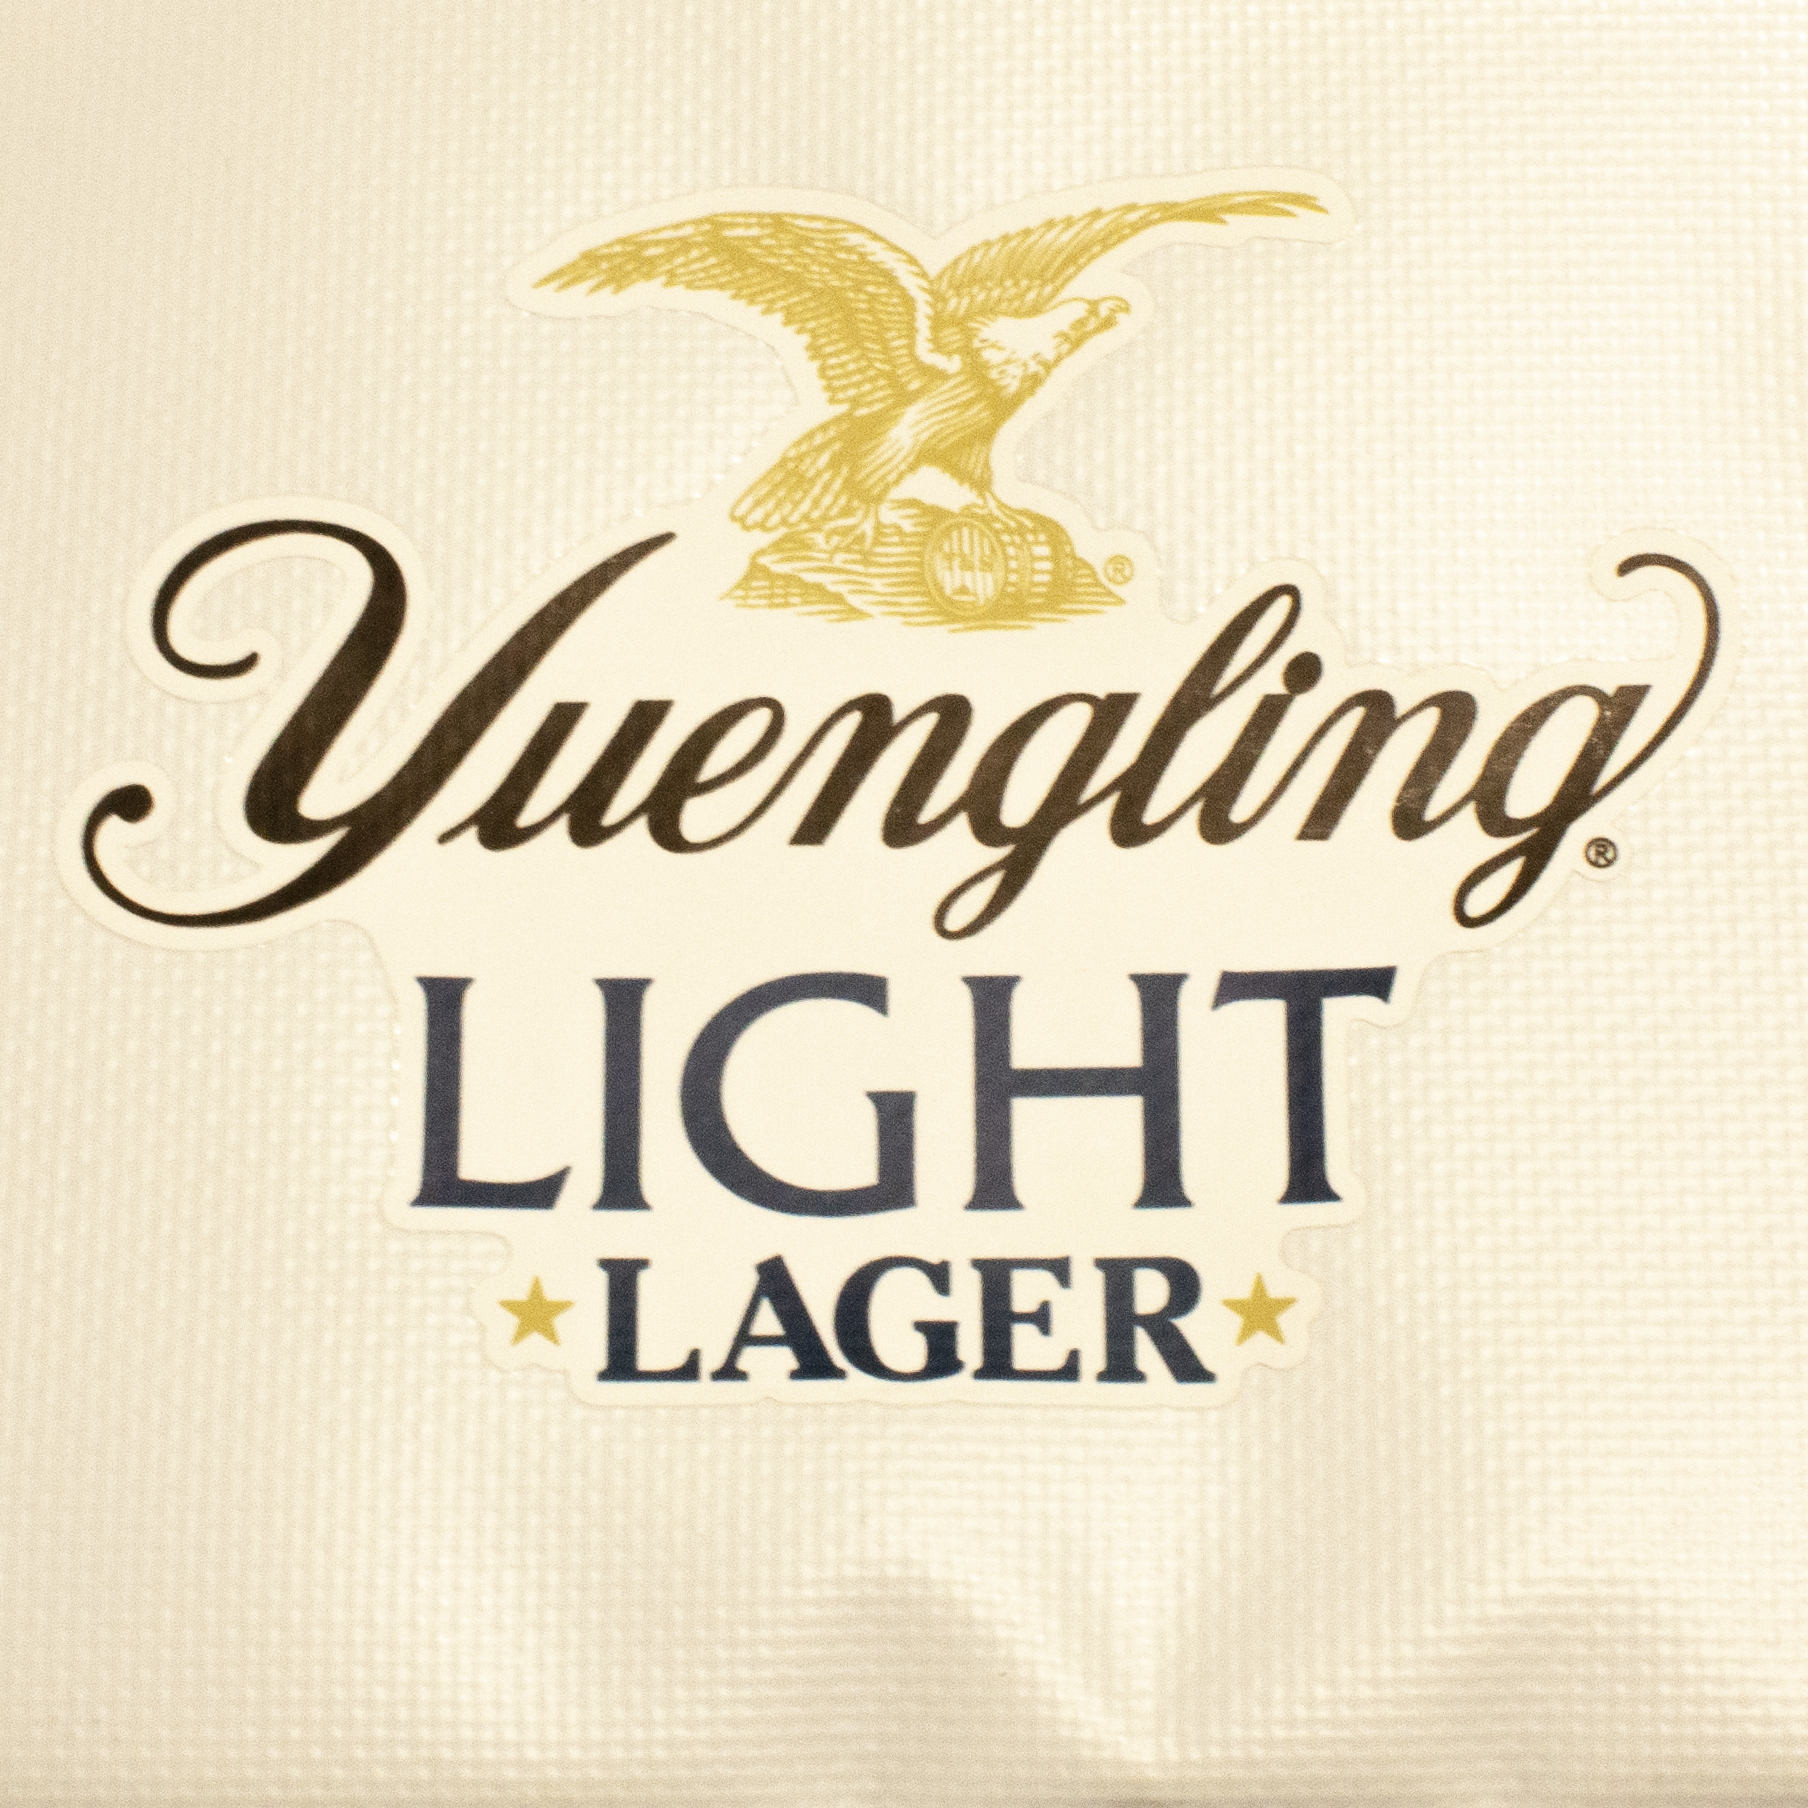 Yuengling logo full color transfer